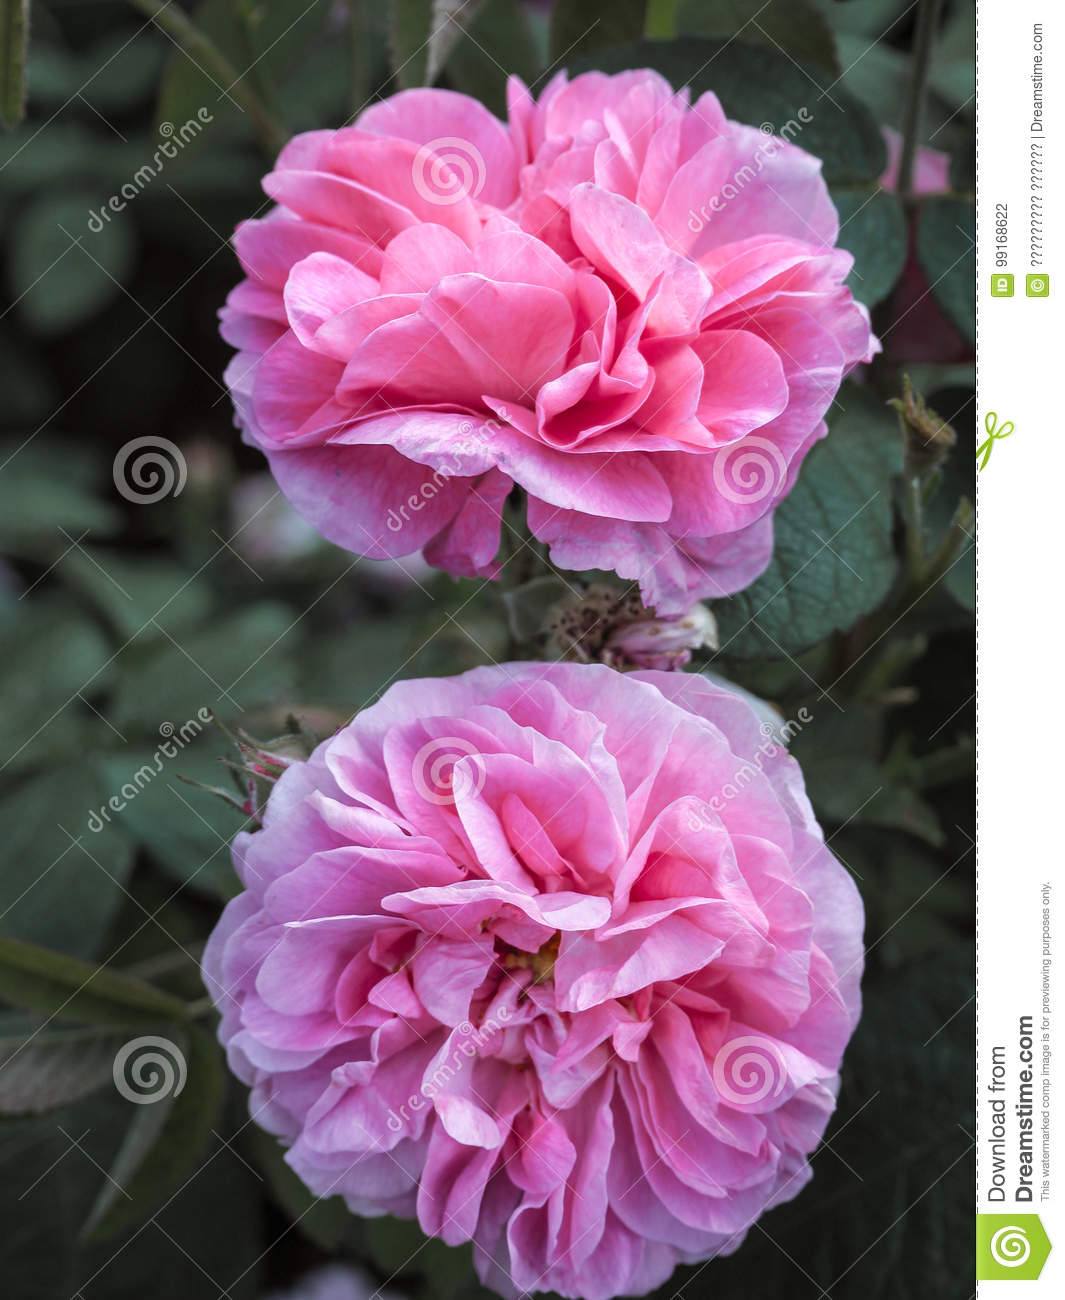 Varietal roses commercial cultivation of flowers for bouquets commercial cultivation of flowers for bouquets fragrant rose izmirmasajfo